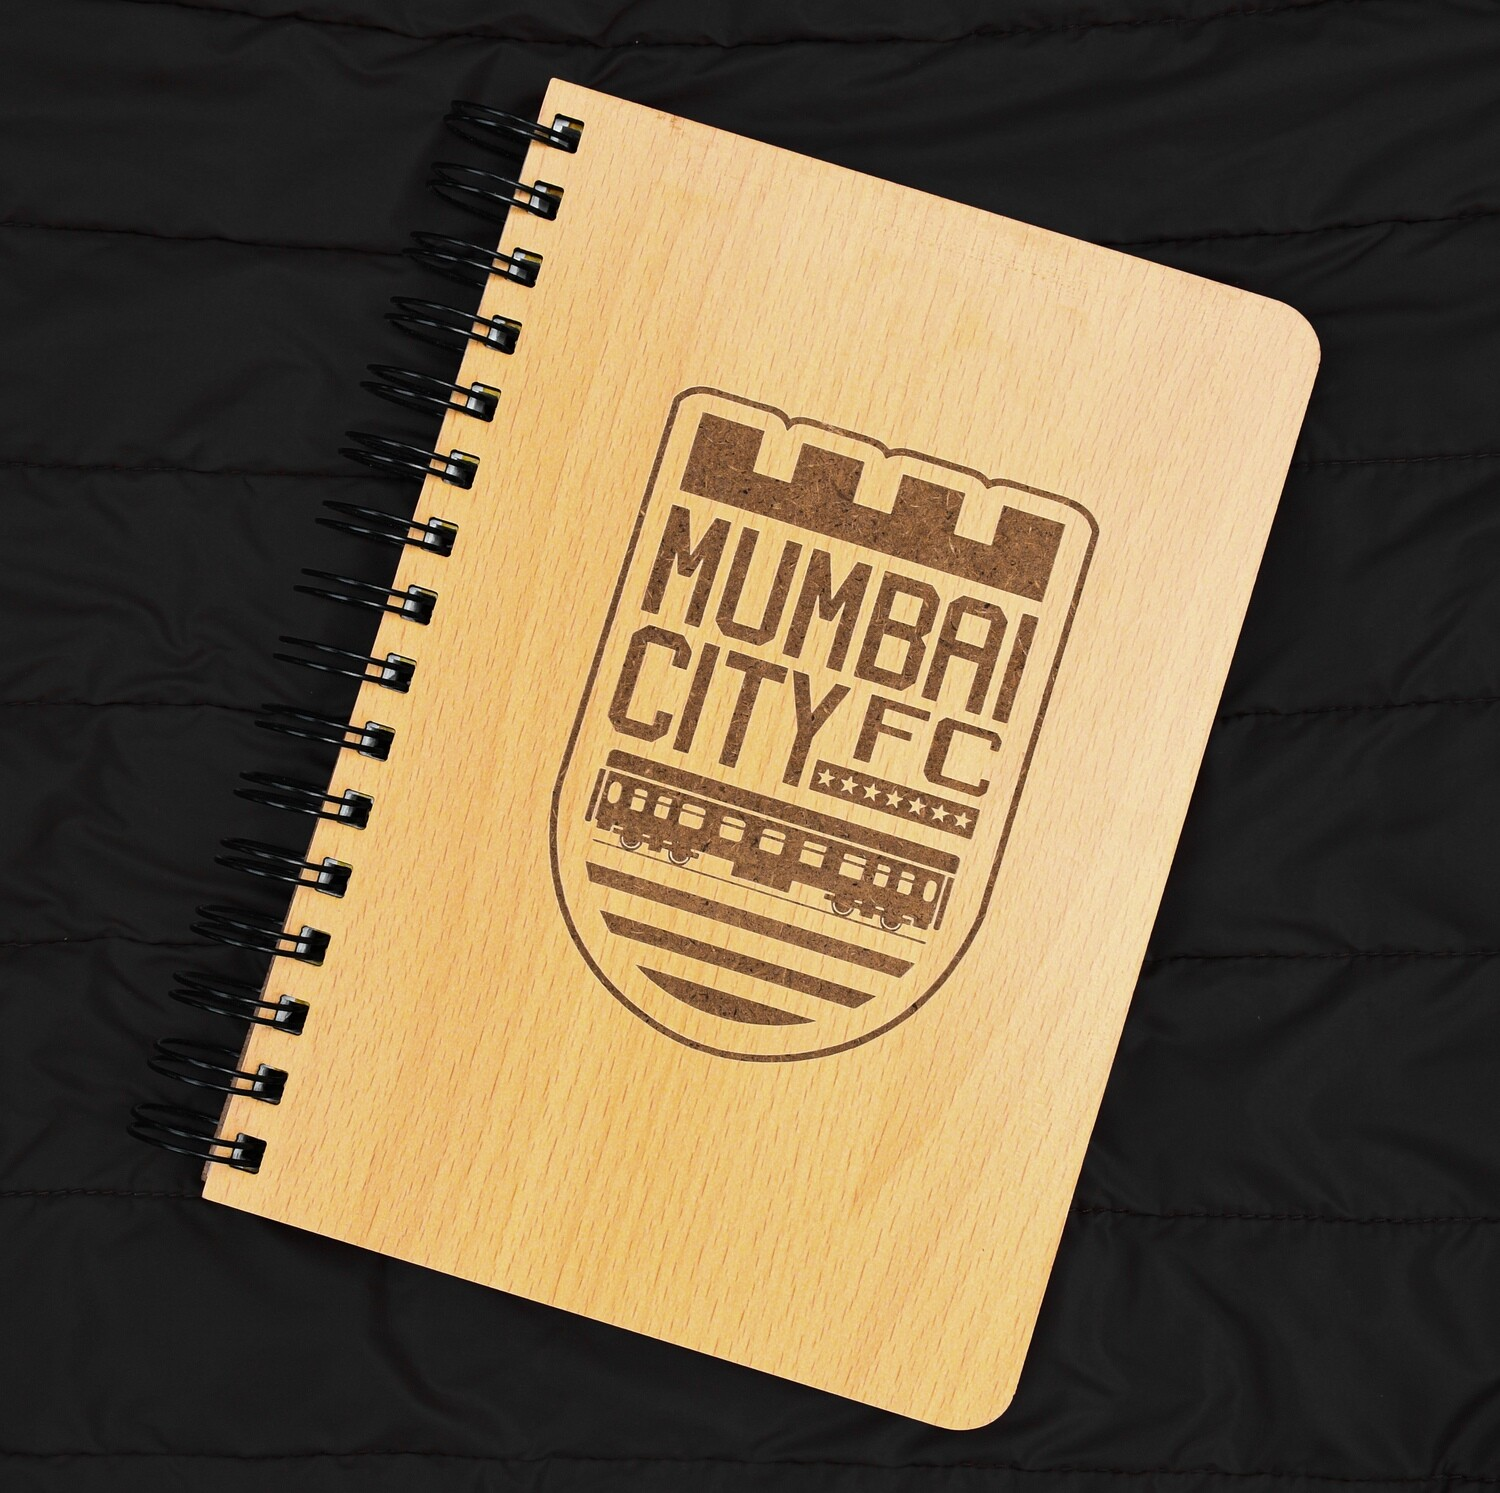 Mumbai City FC Diary Notebook with Engraved Wooden Cover